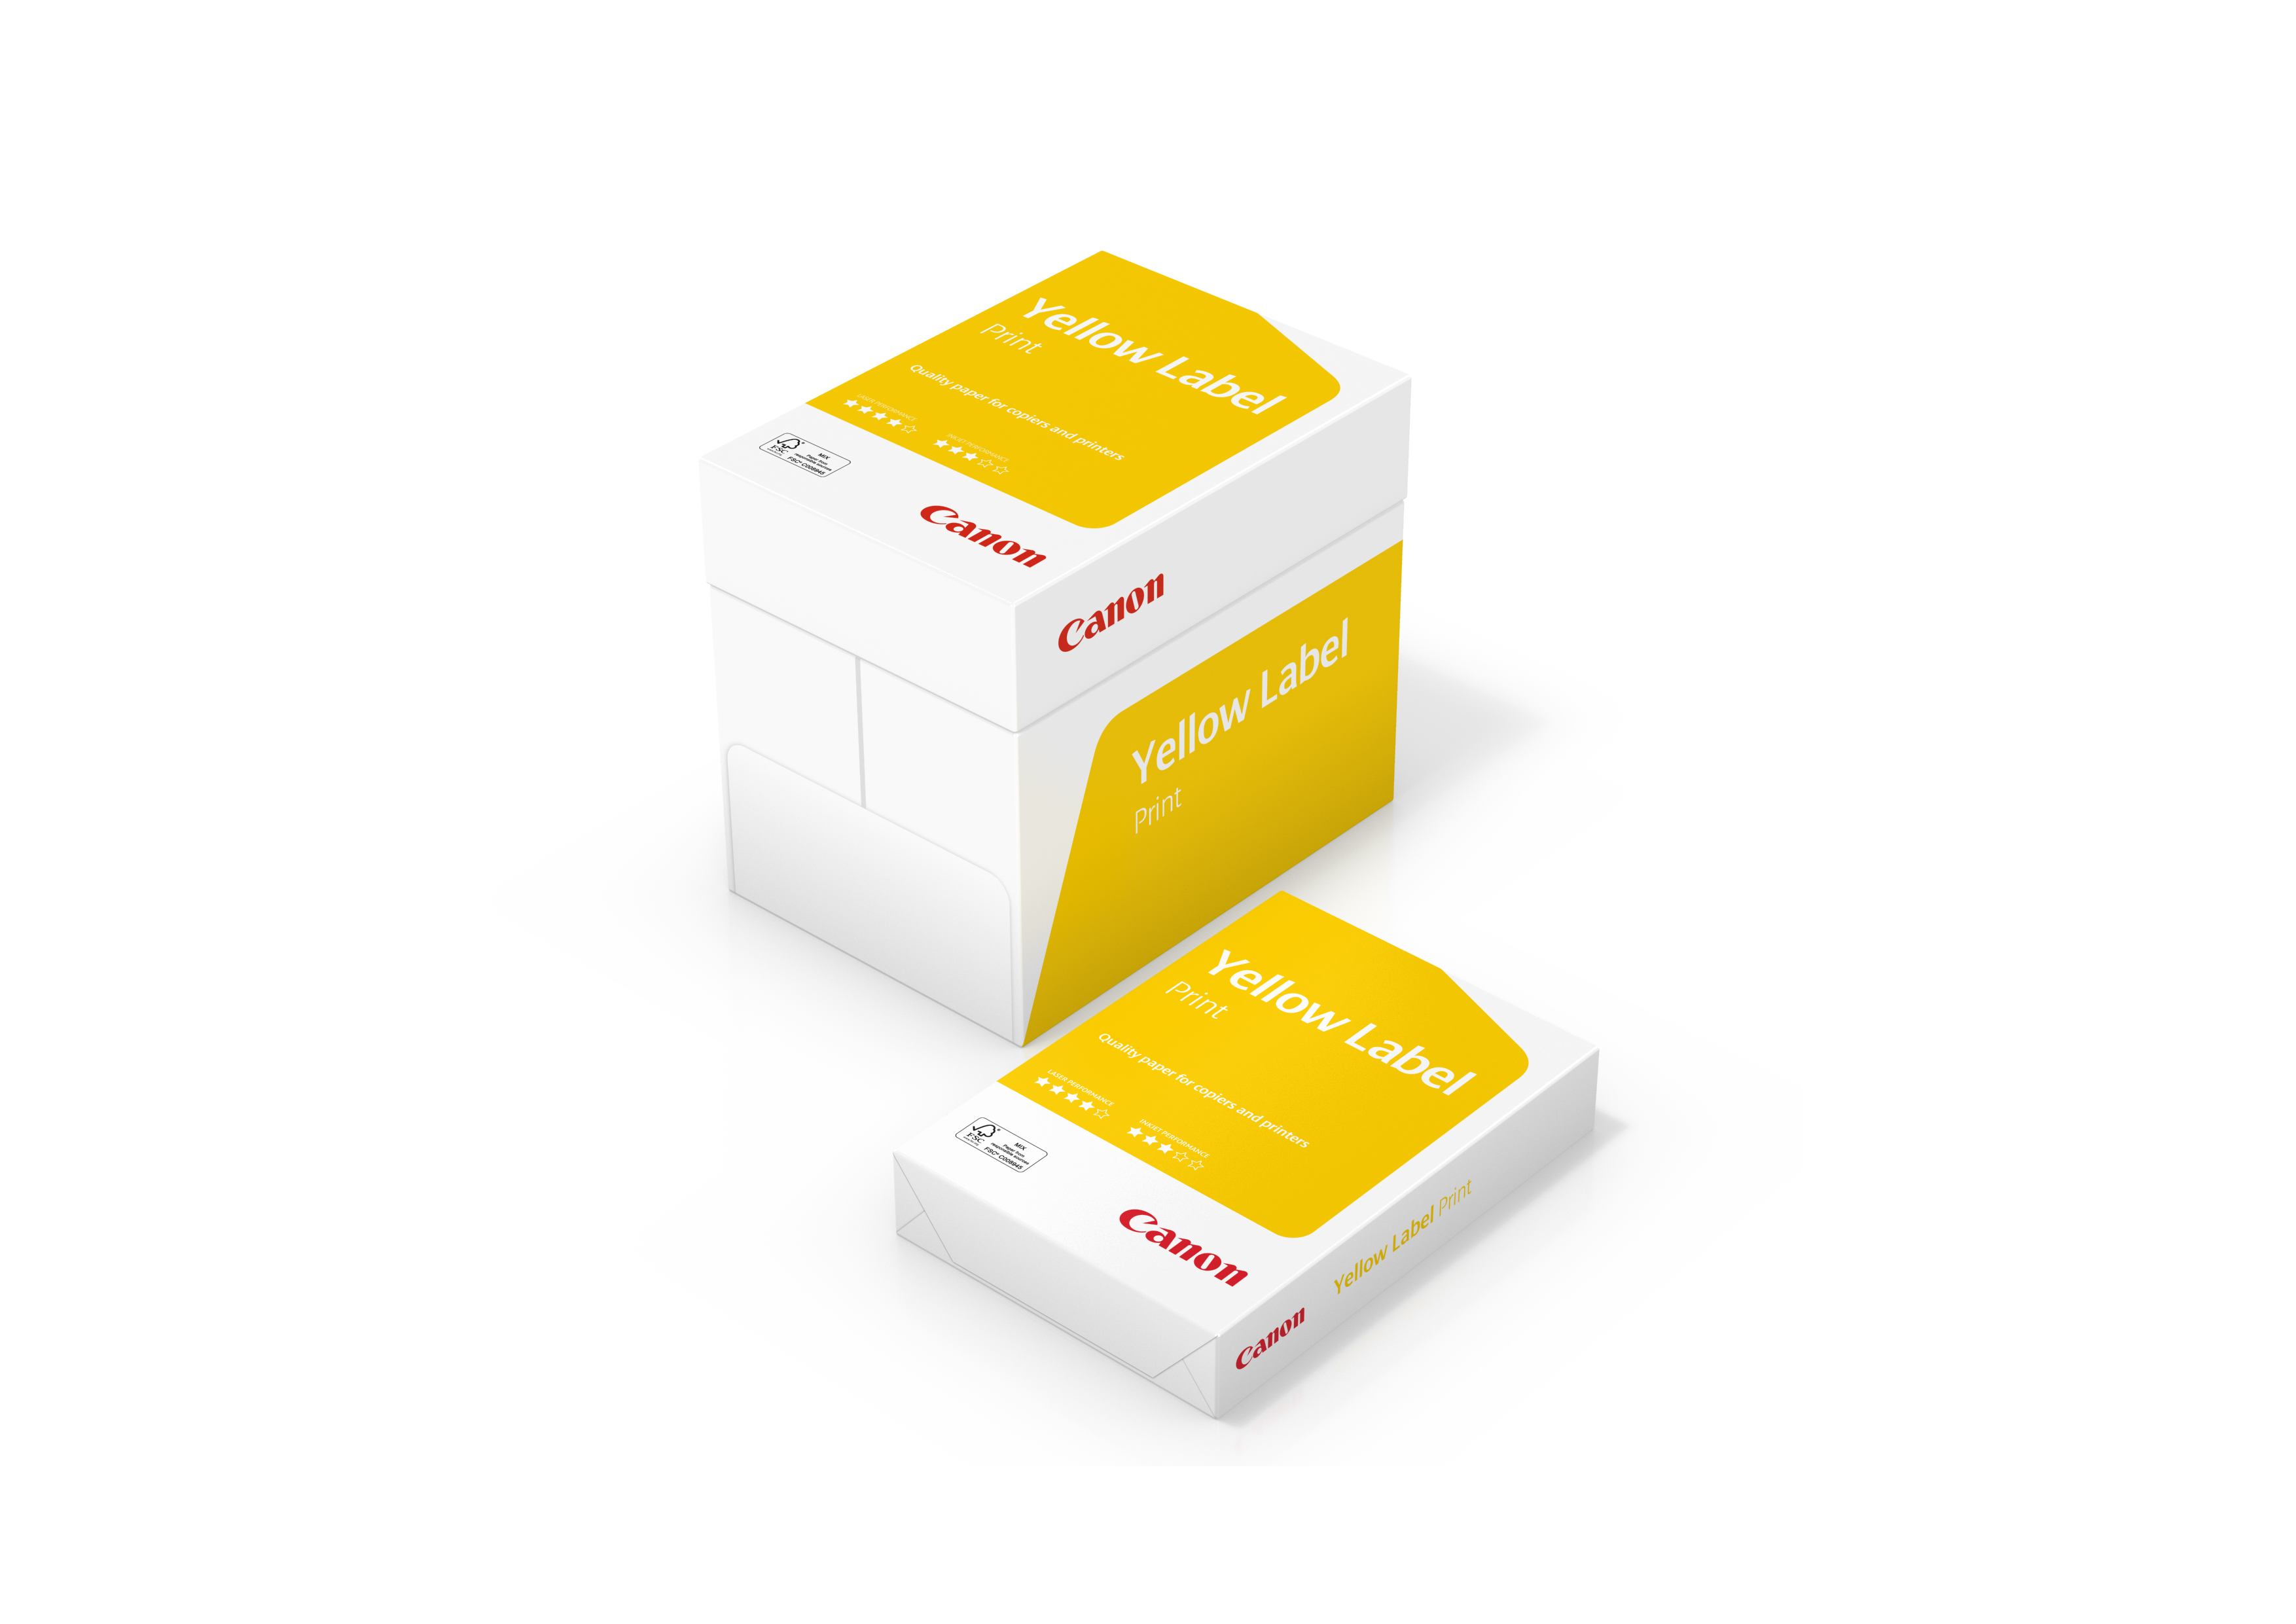 canon yellow label BR